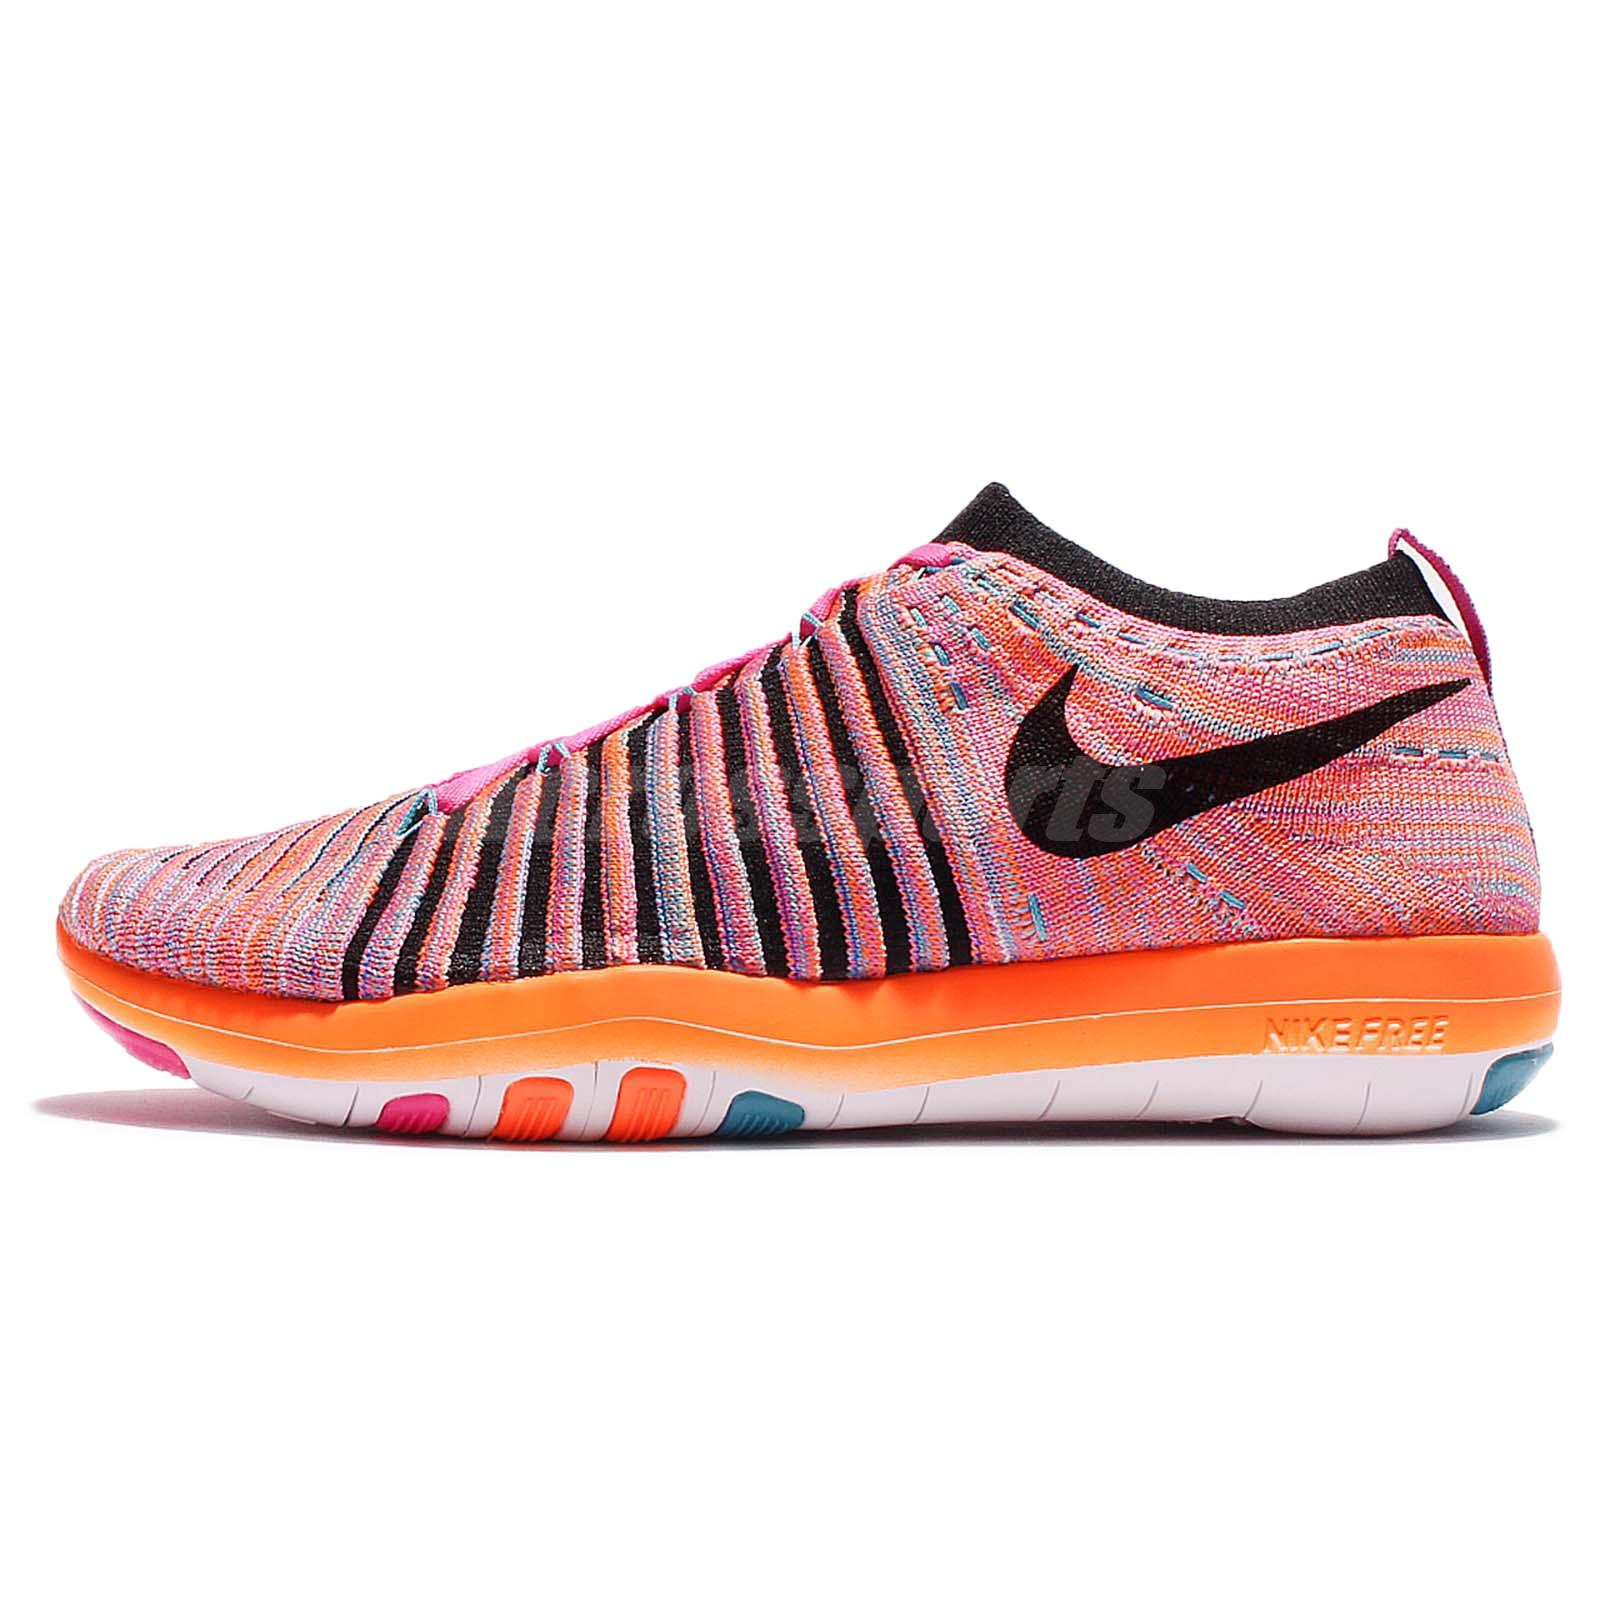 wmns nike free transform flyknit pink orange